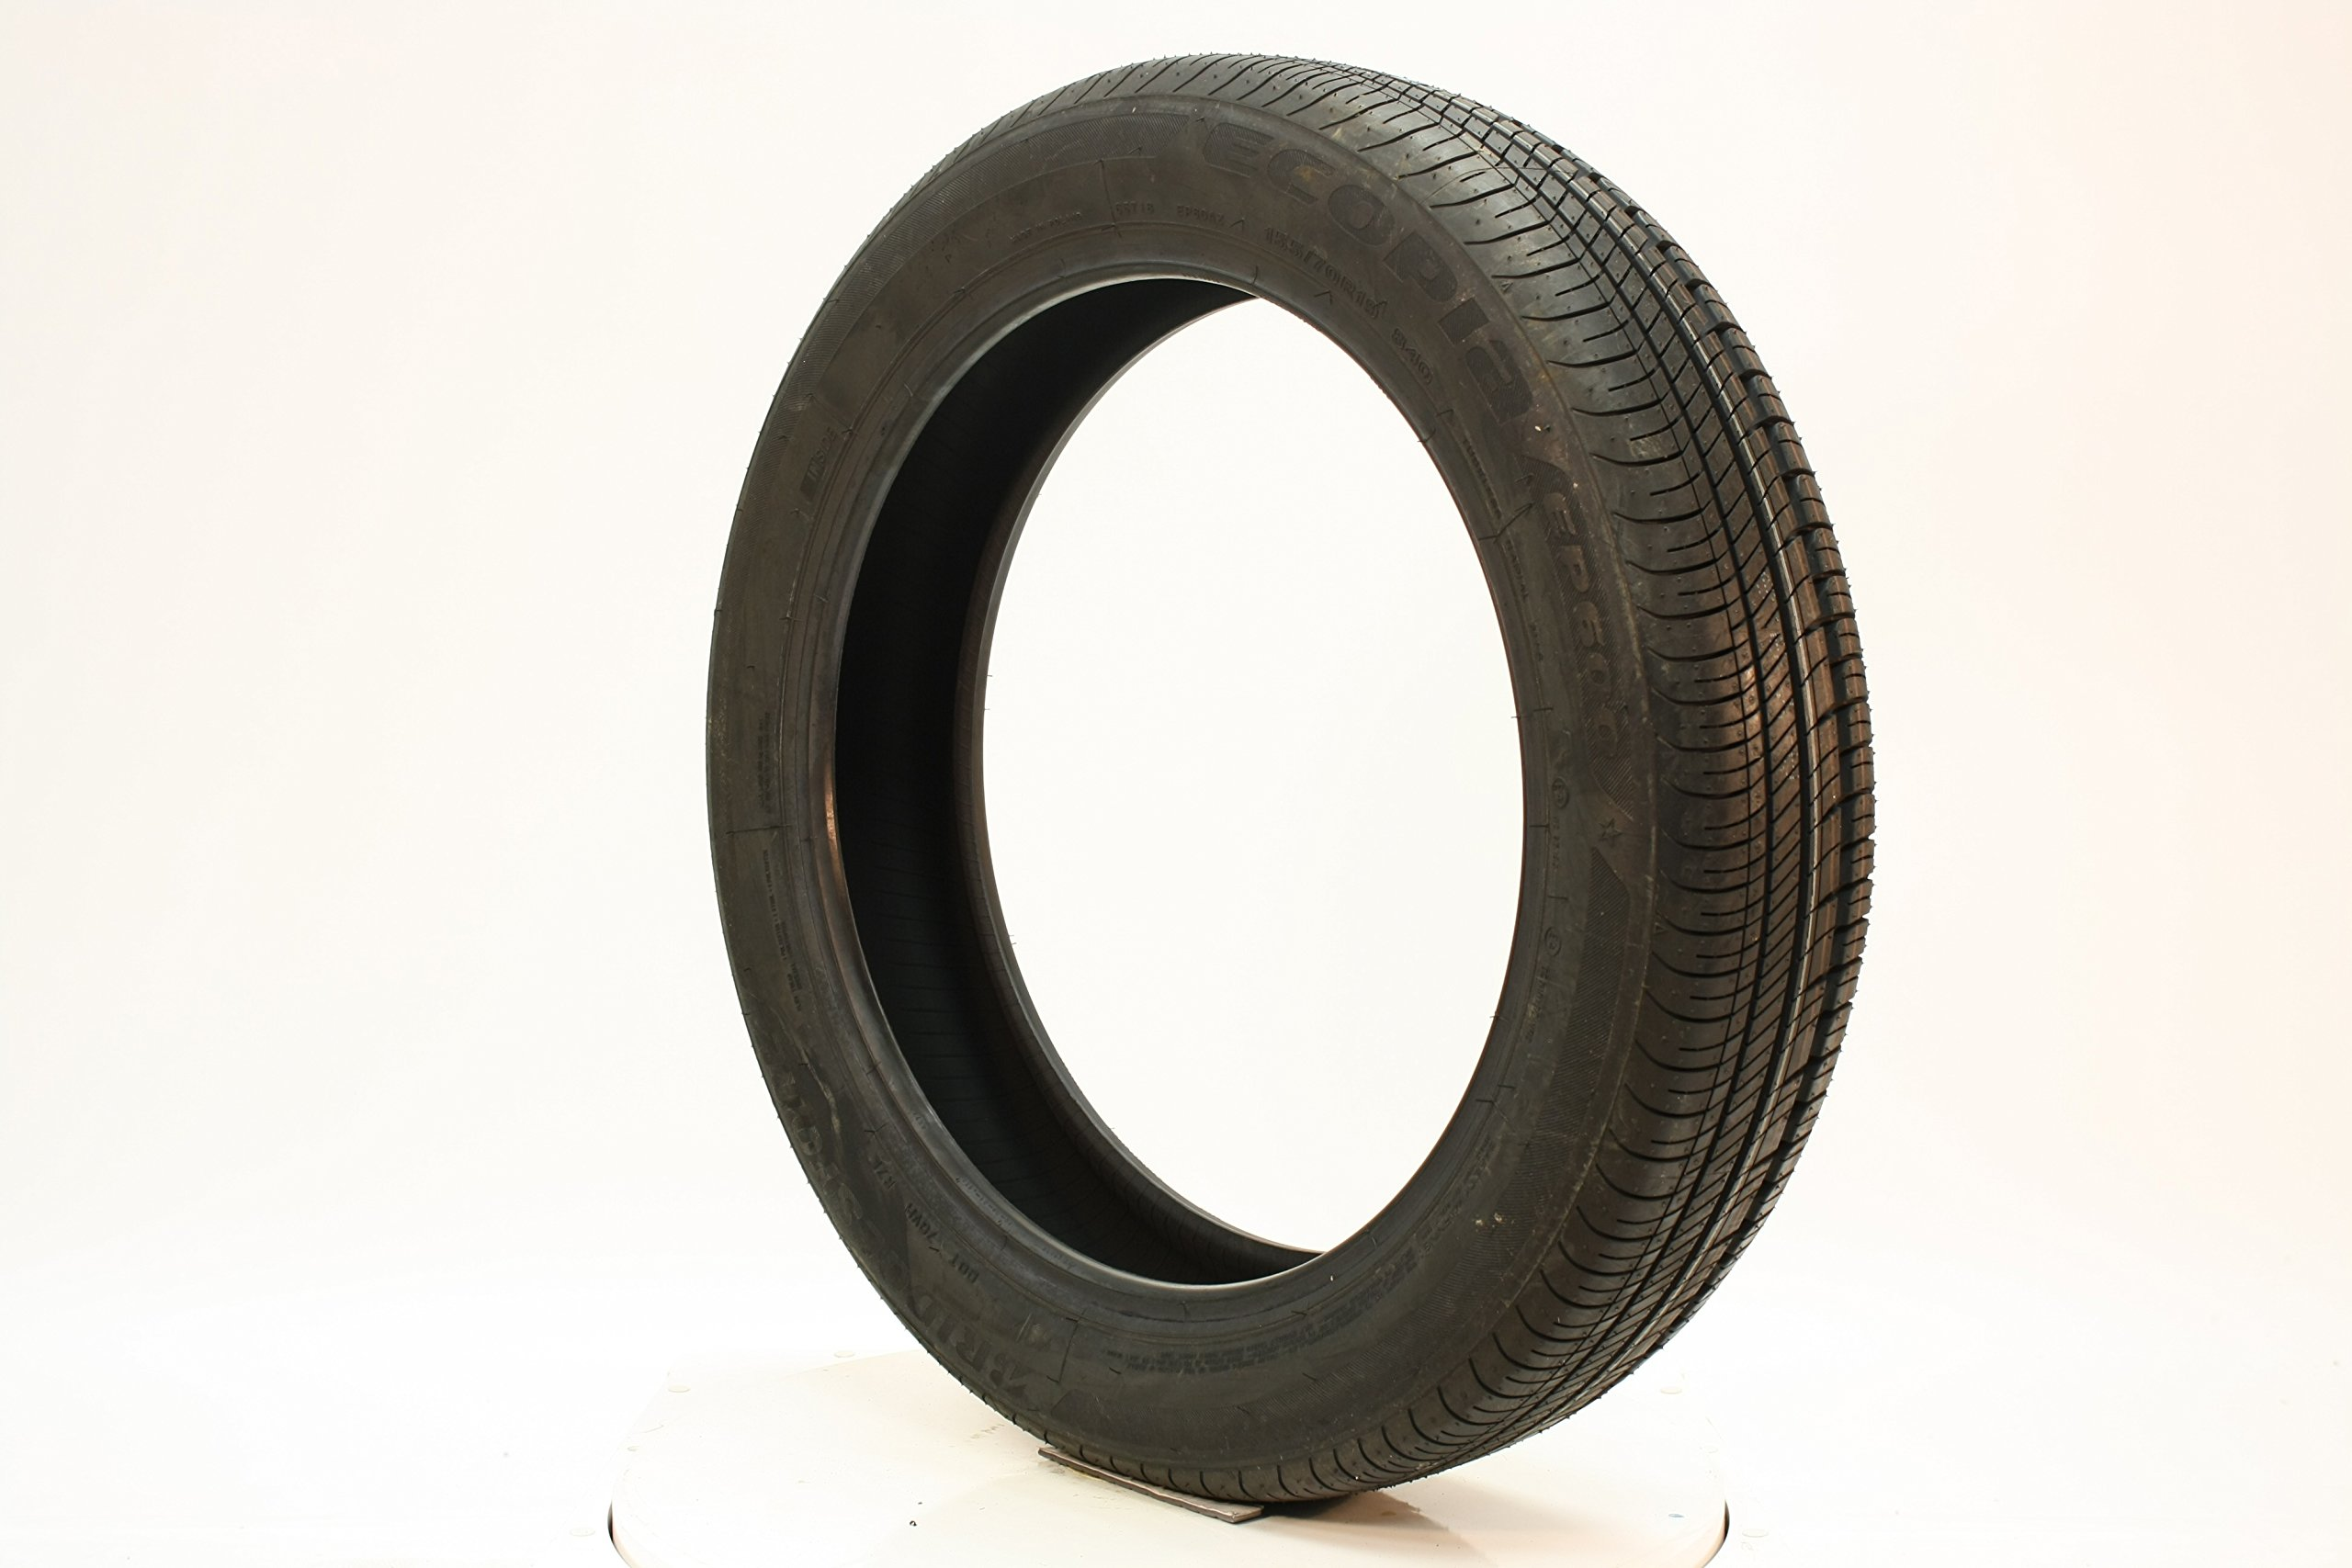 Bridgestone Ecopia EP600 Touring Radial Tire -175/60R19 86Q by Bridgestone